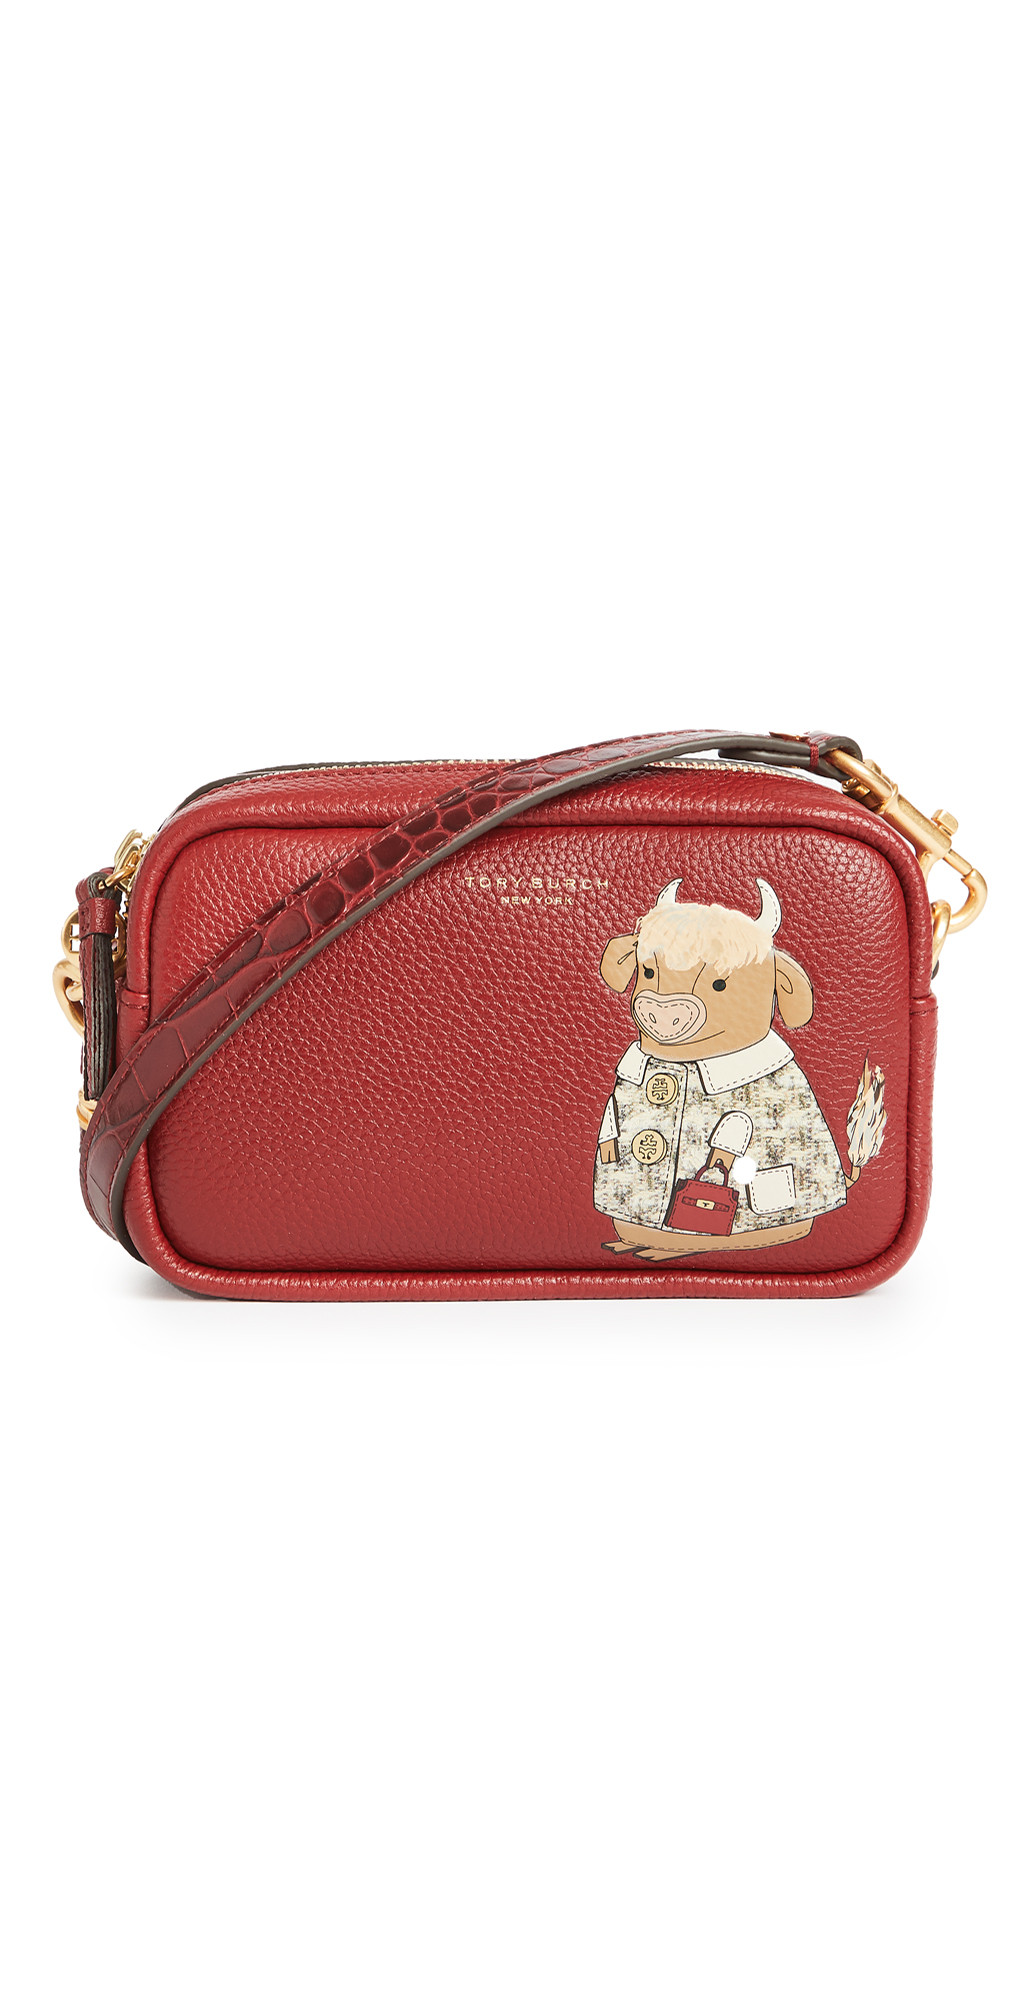 Tory Burch Ozzie The Ox Mini Bag